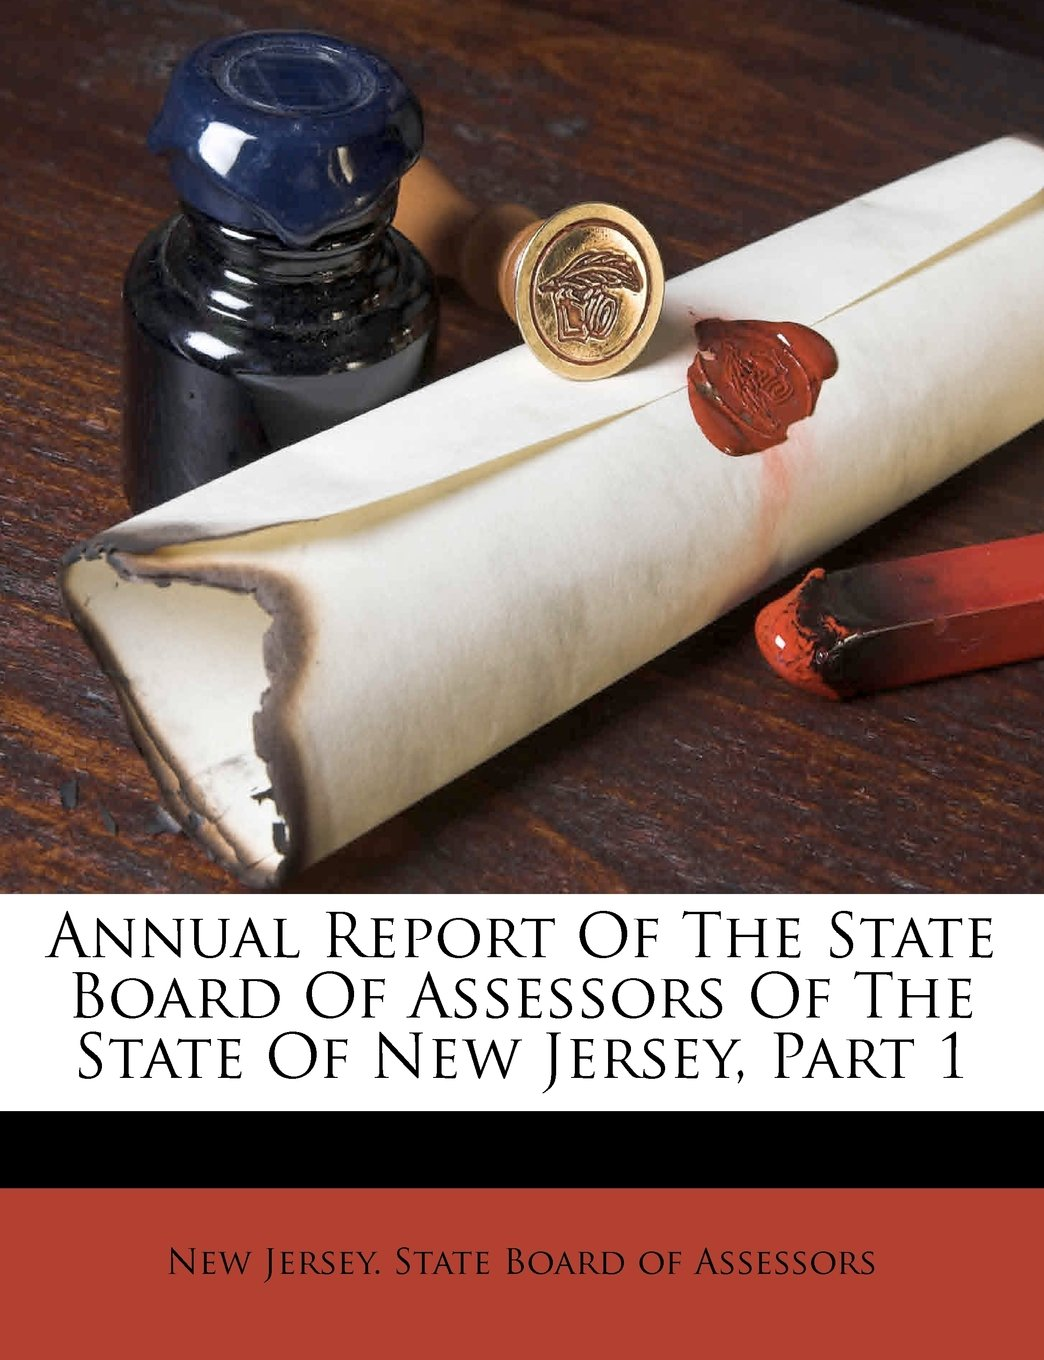 Download Annual Report Of The State Board Of Assessors Of The State Of New Jersey, Part 1 PDF ePub fb2 book